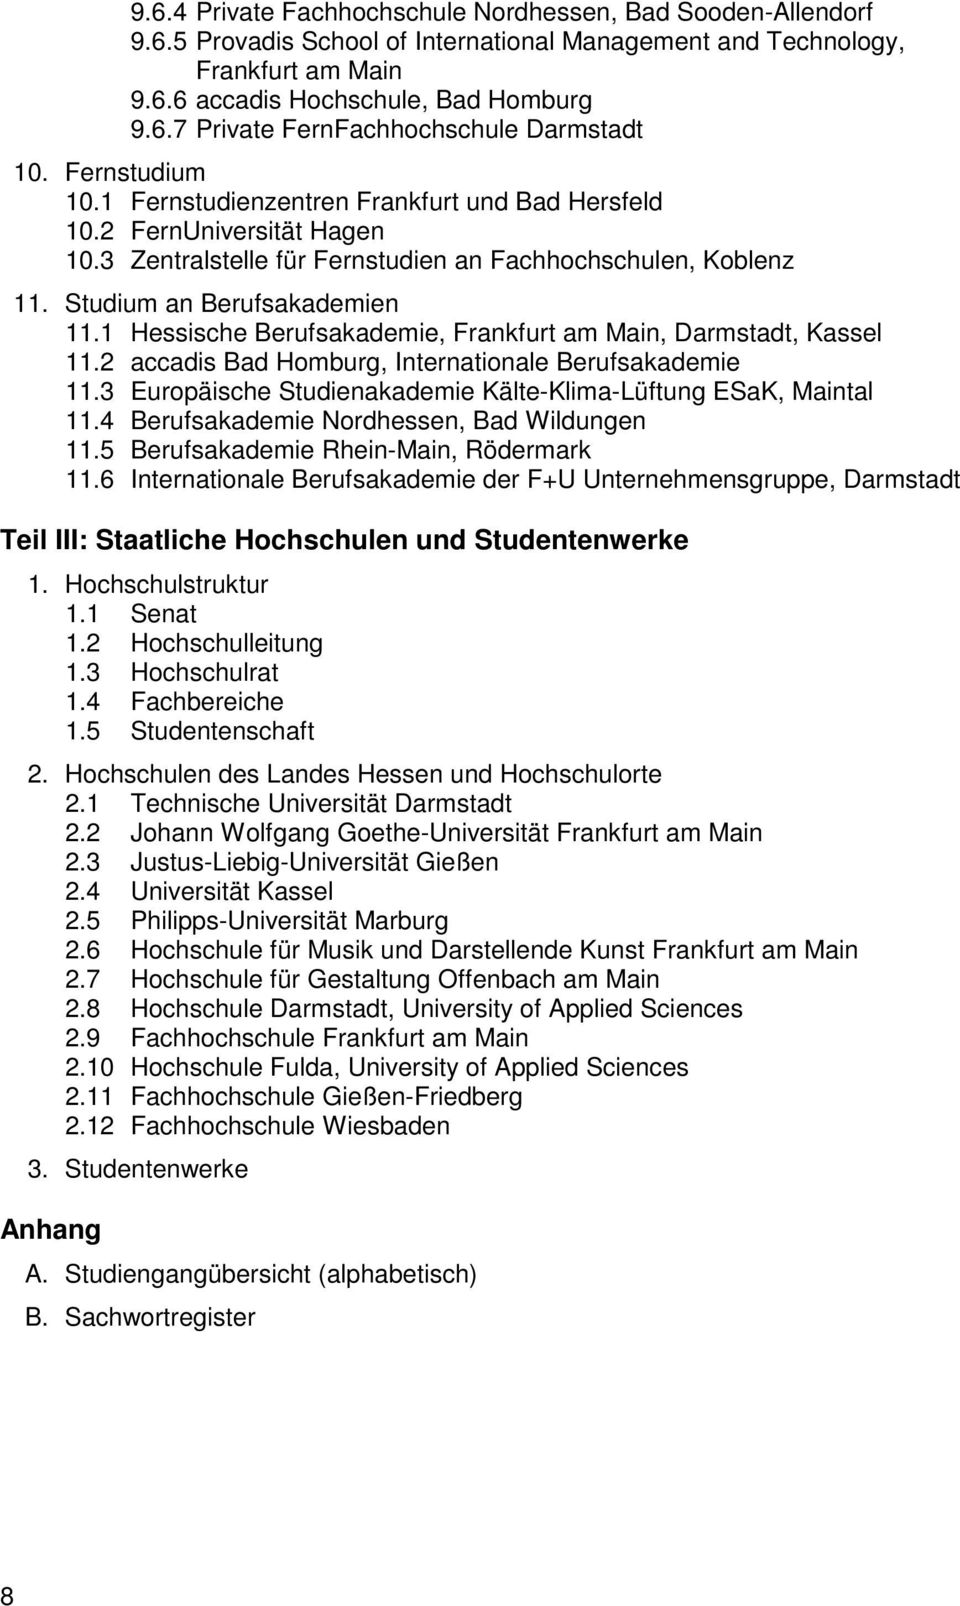 1 Hessische Berufsakademie, Frankfurt am Main, Darmstadt, Kassel 11.2 accadis Bad Homburg, Internationale Berufsakademie 11.3 Europäische Studienakademie Kälte-Klima-Lüftung ESaK, Maintal 11.